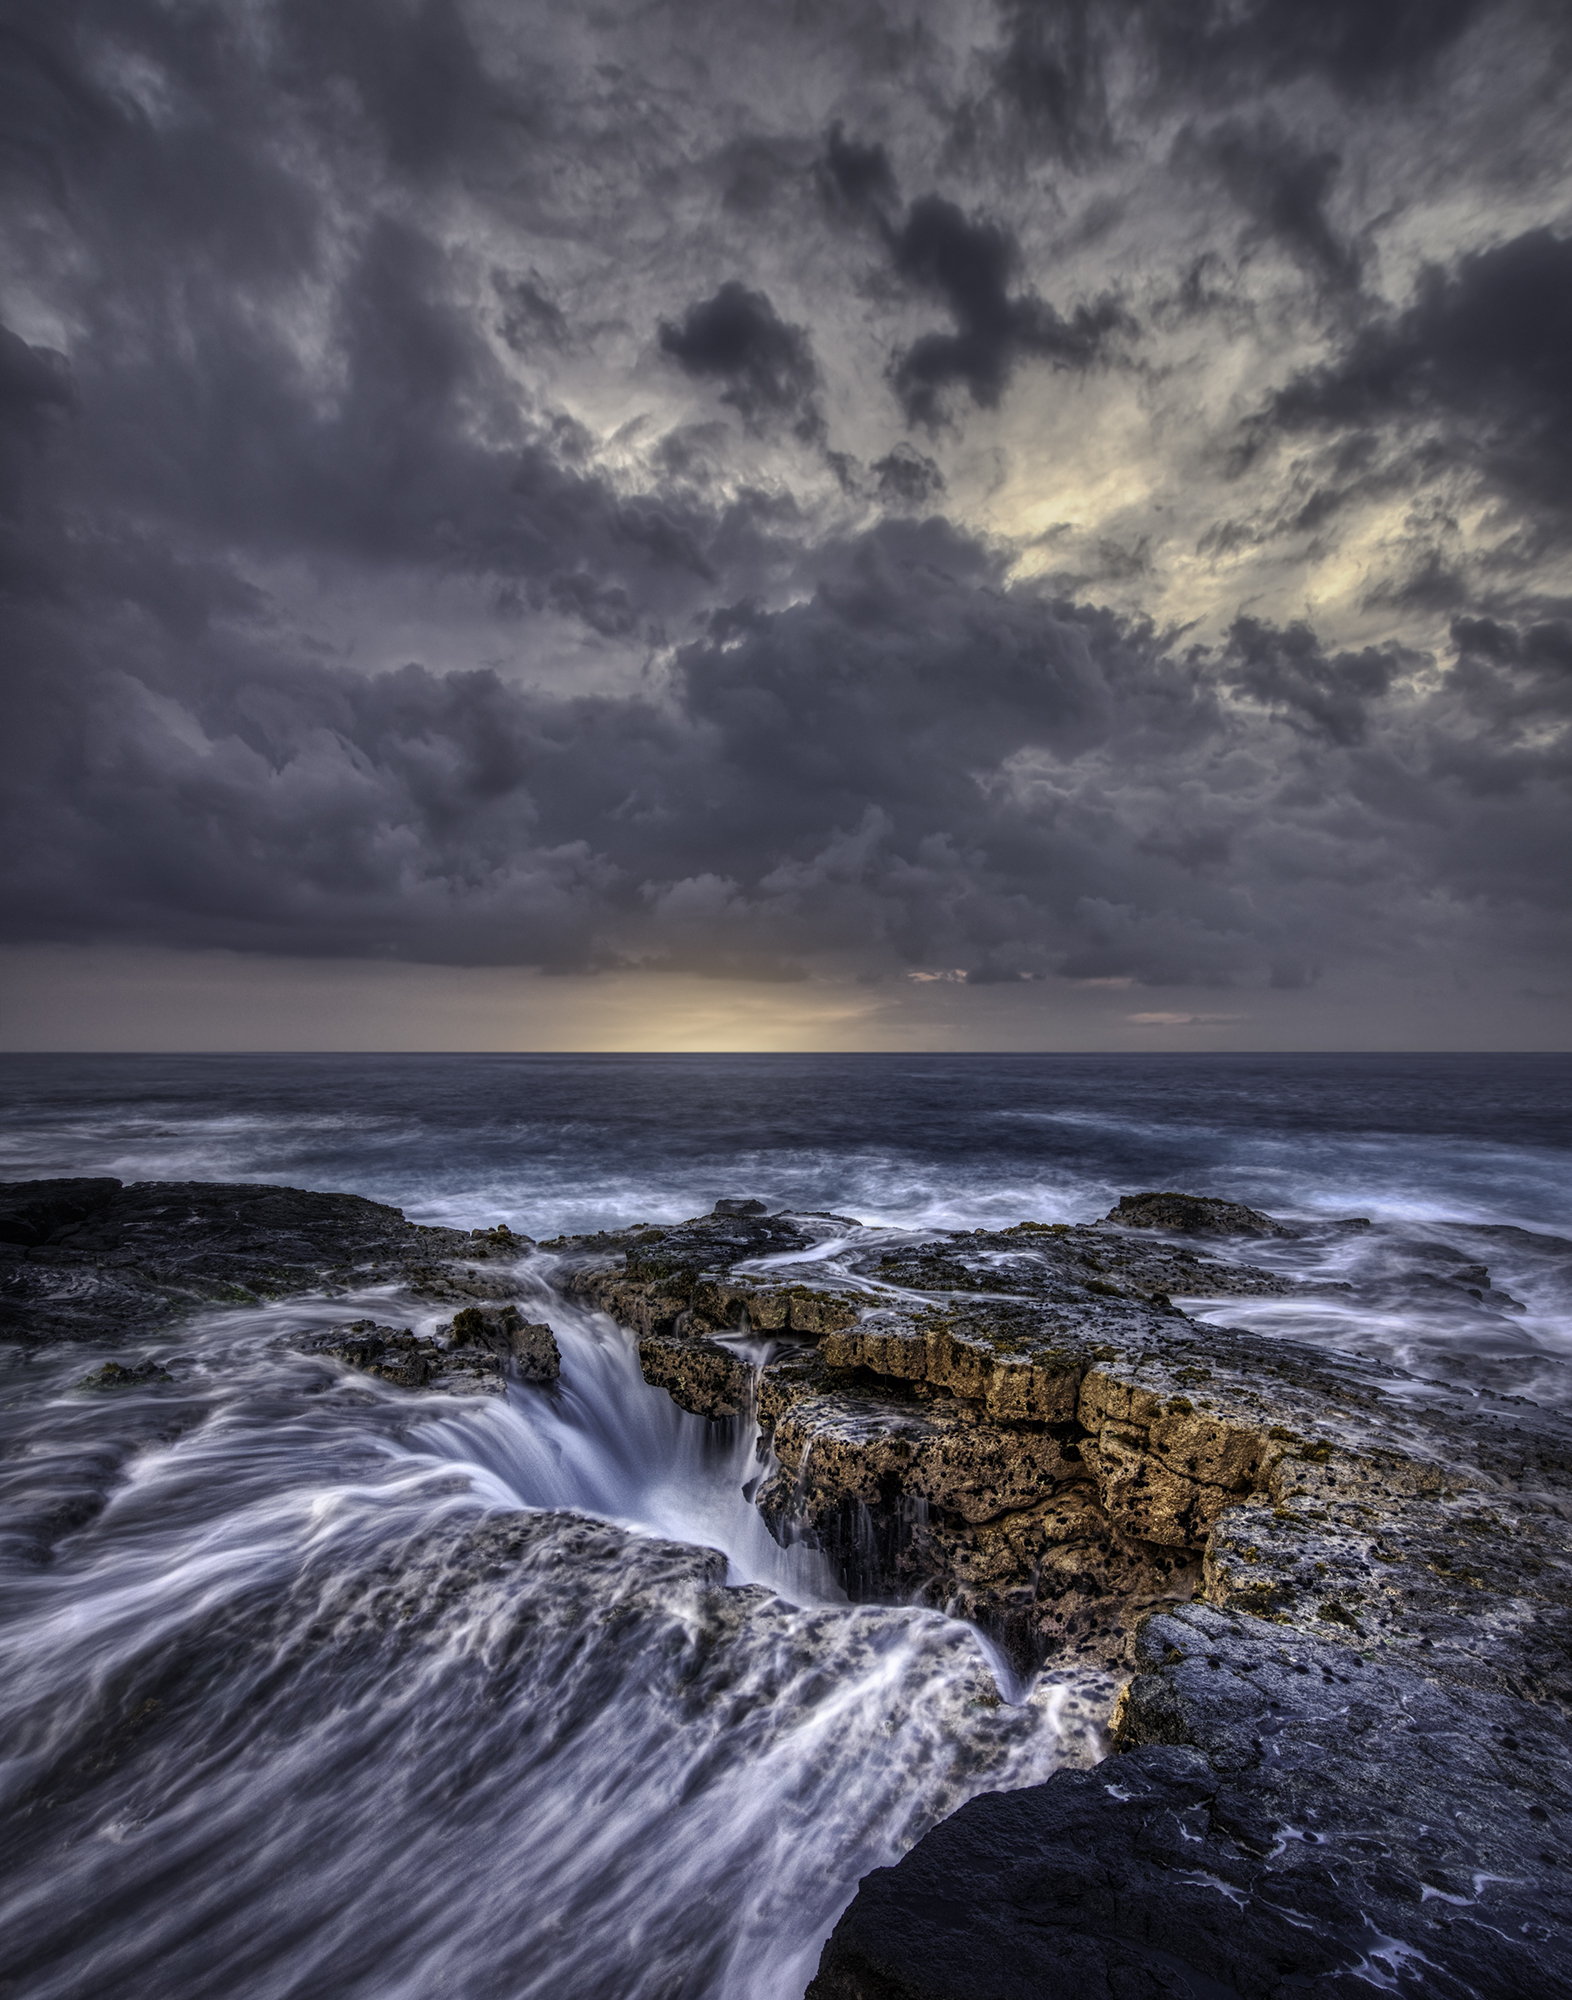 Moody Views of Hawaii's Rugged Beaches by Photographer Jason Wright